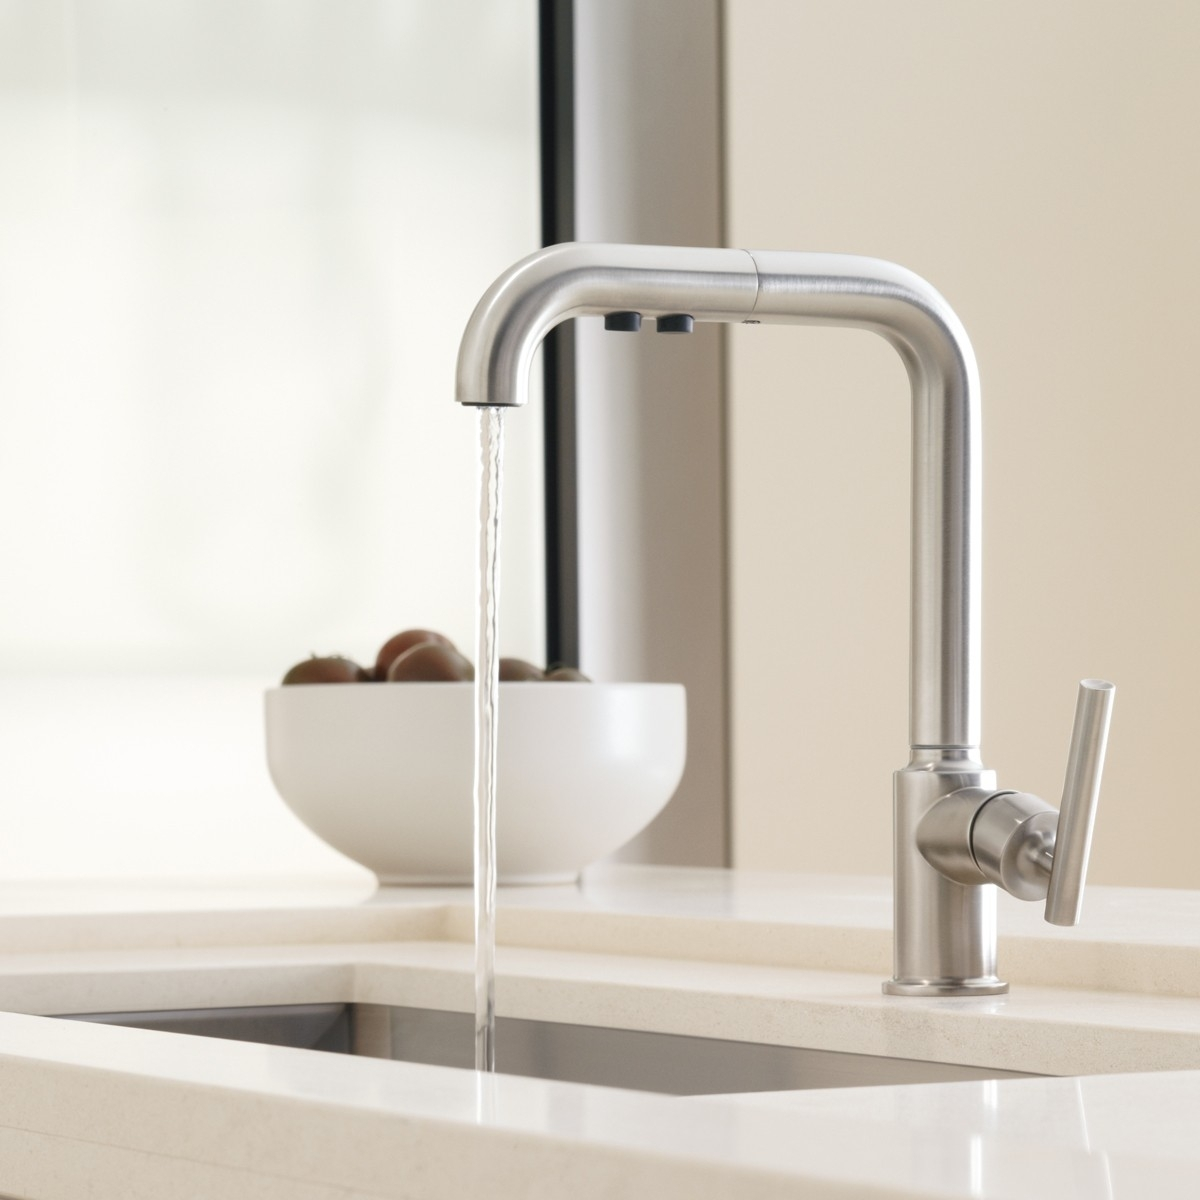 Bathroom Faucets | Bathroom Design | Harvard MA